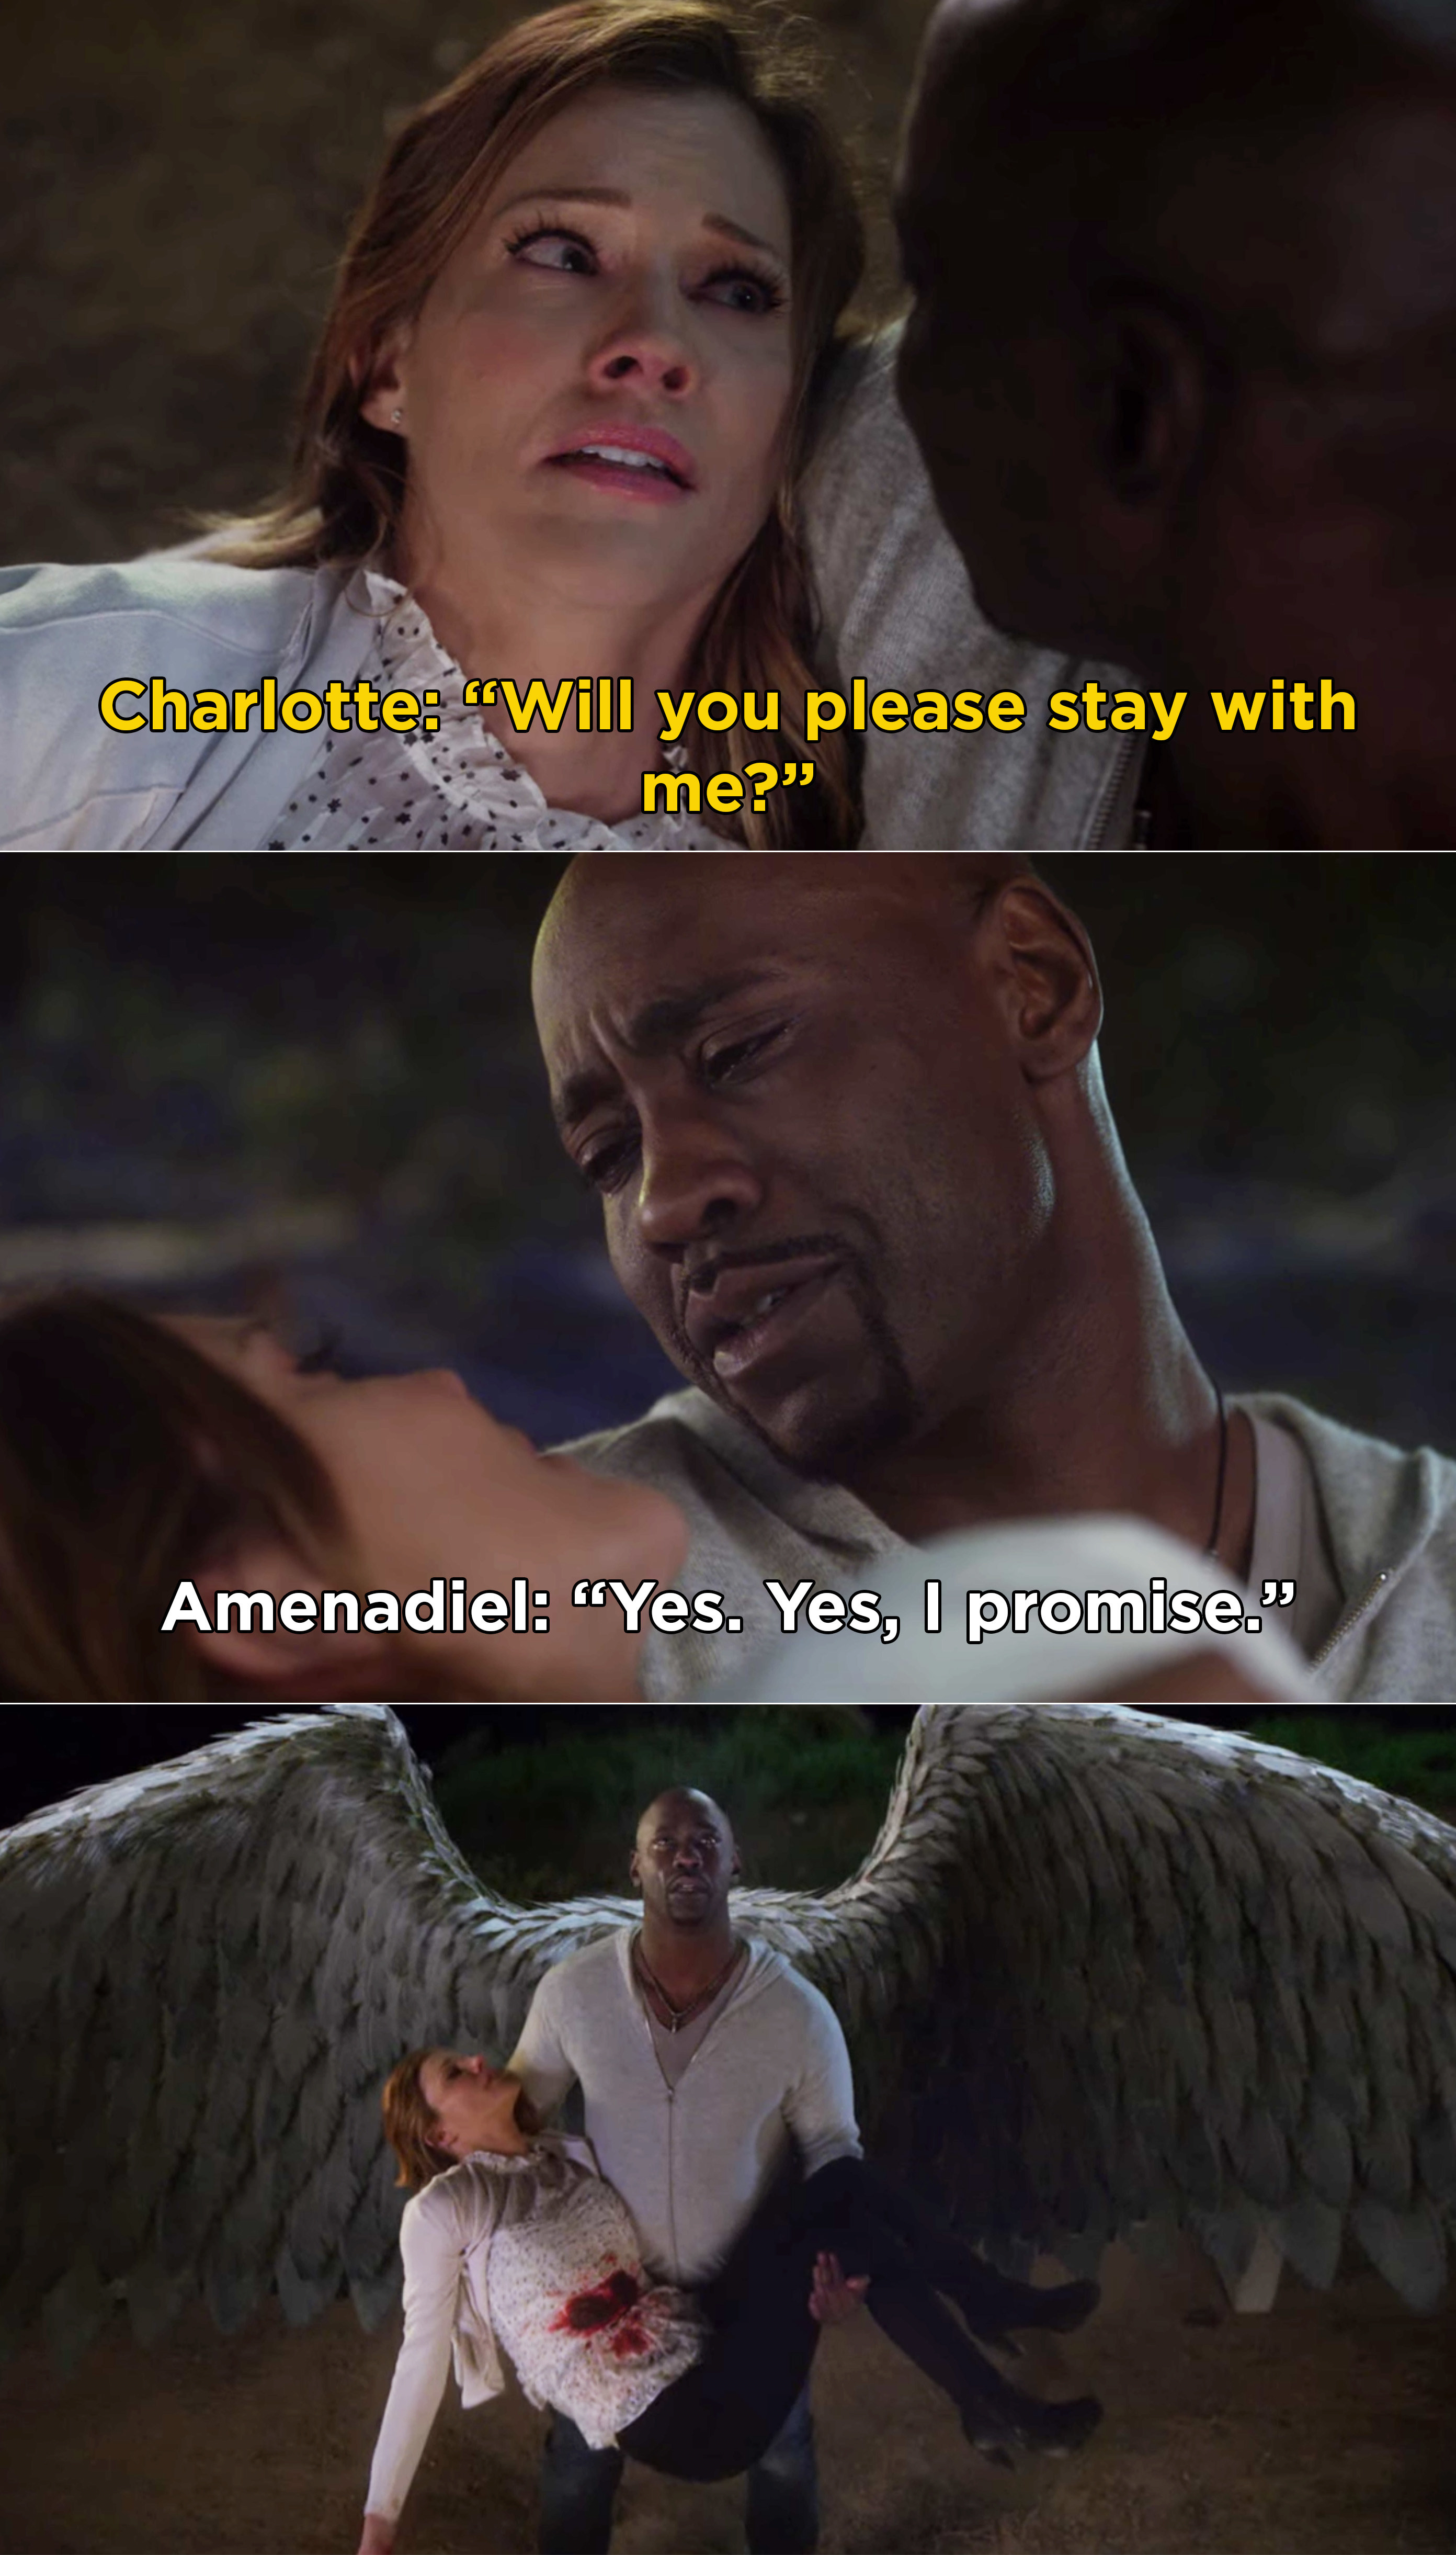 Amenadiel promising to stay with Charlotte